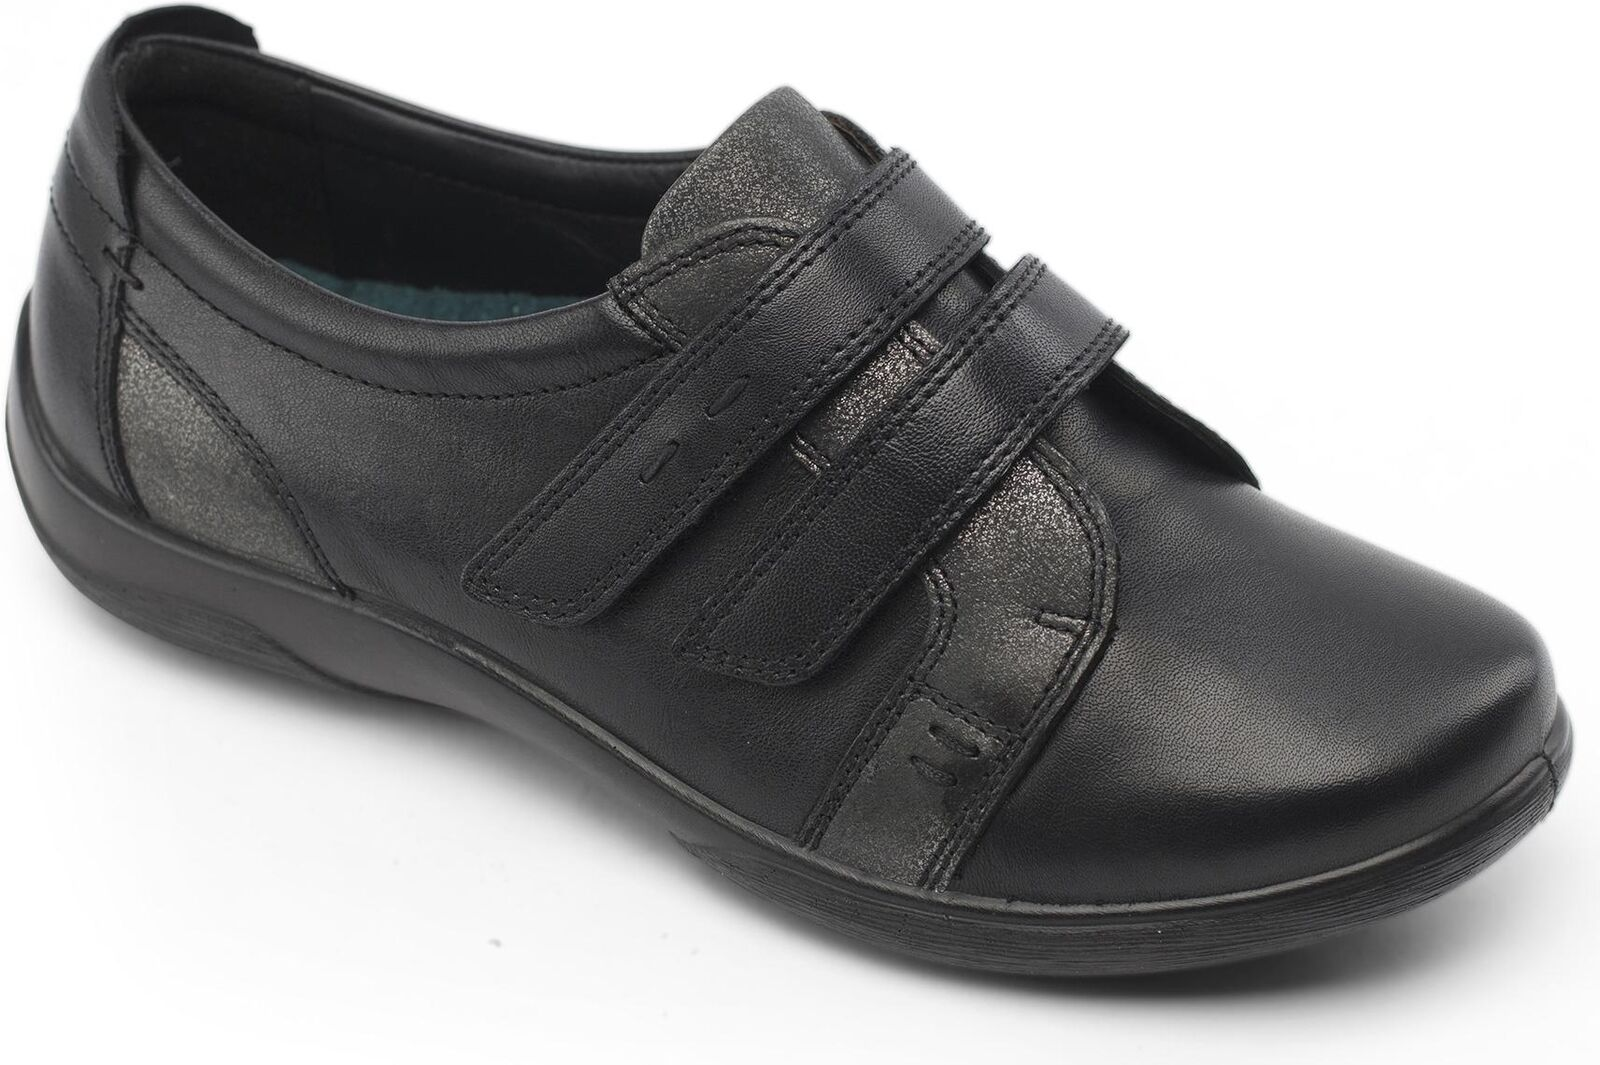 Padders piano femme en cuir extra large (2E 3E) Casual Comfy Chaussures Noir